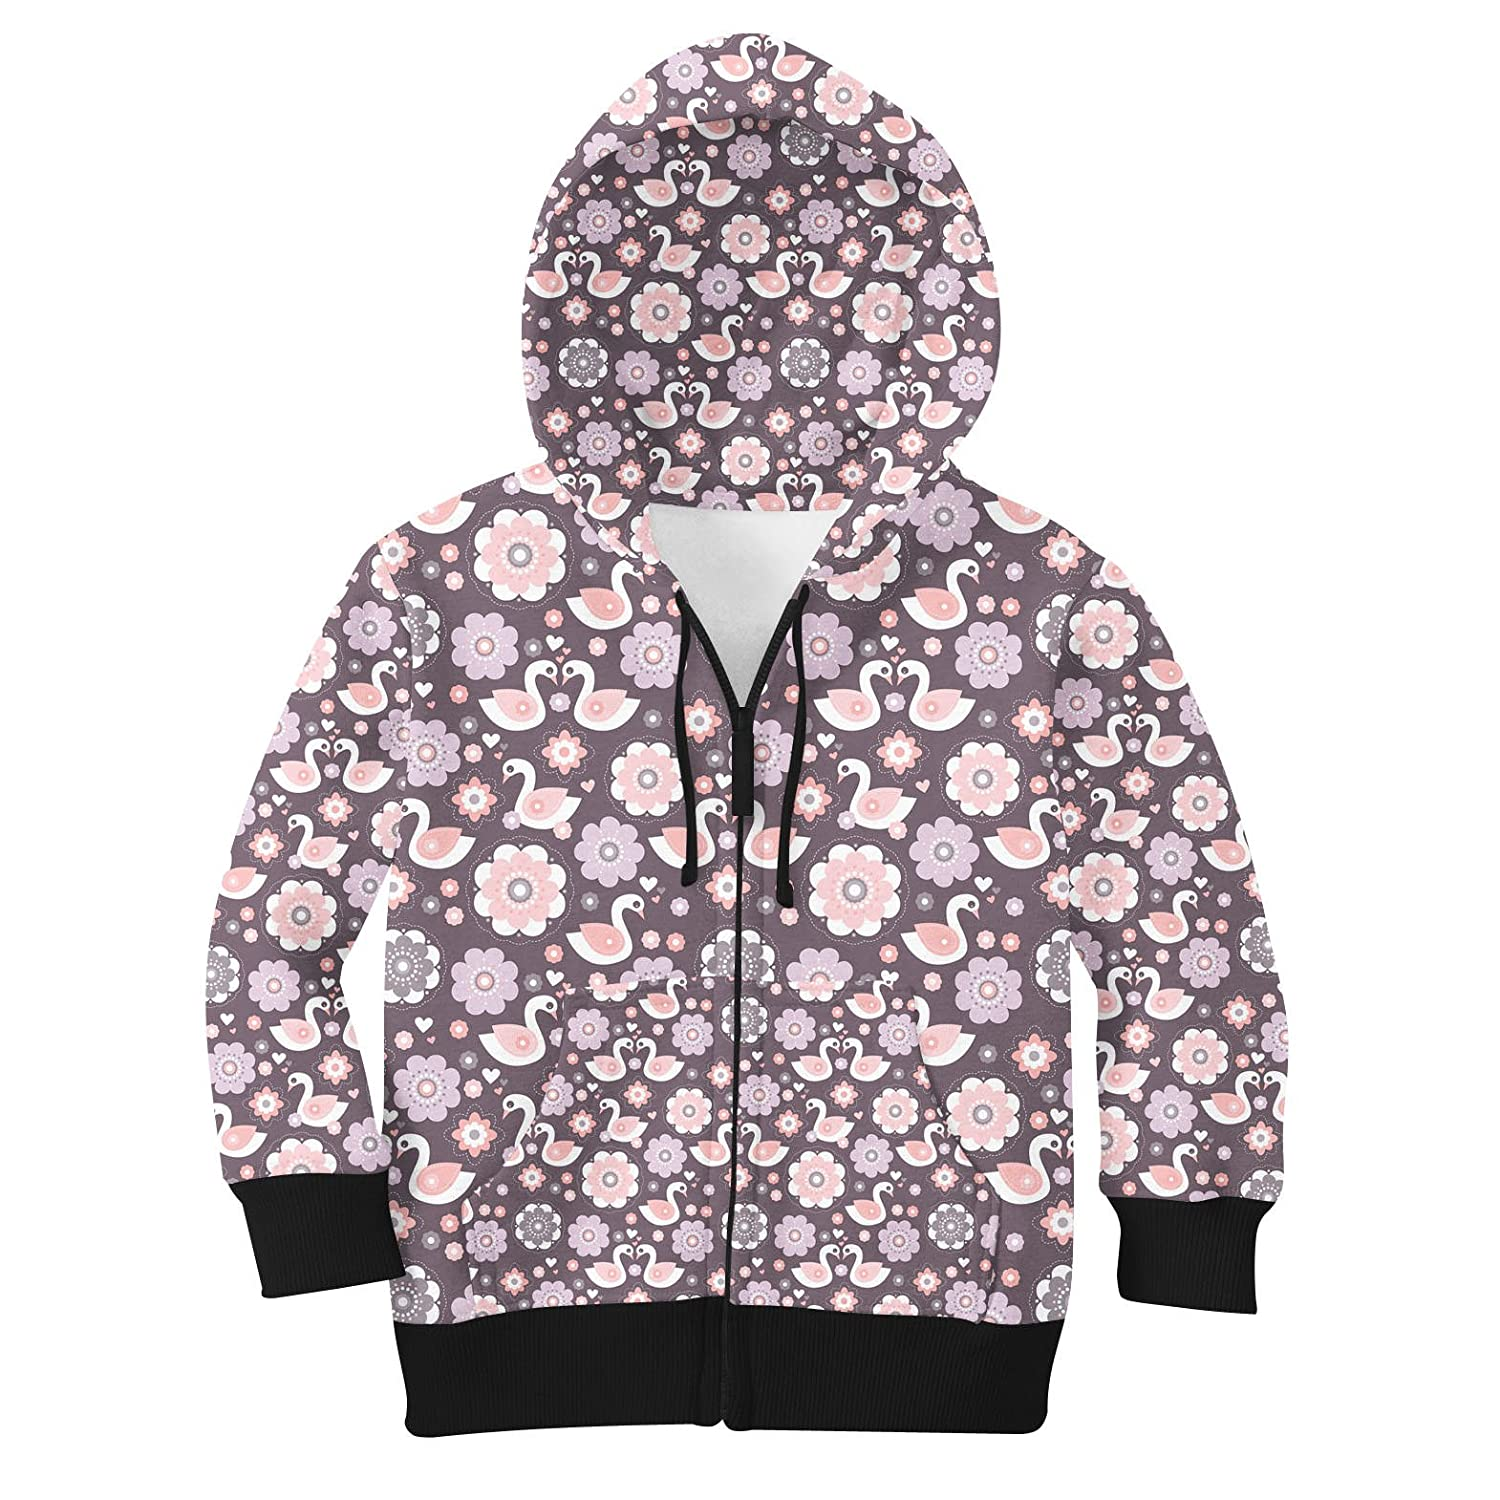 10 Romantic Swans & Flowers Kids Zip Up Hoodie Unisex